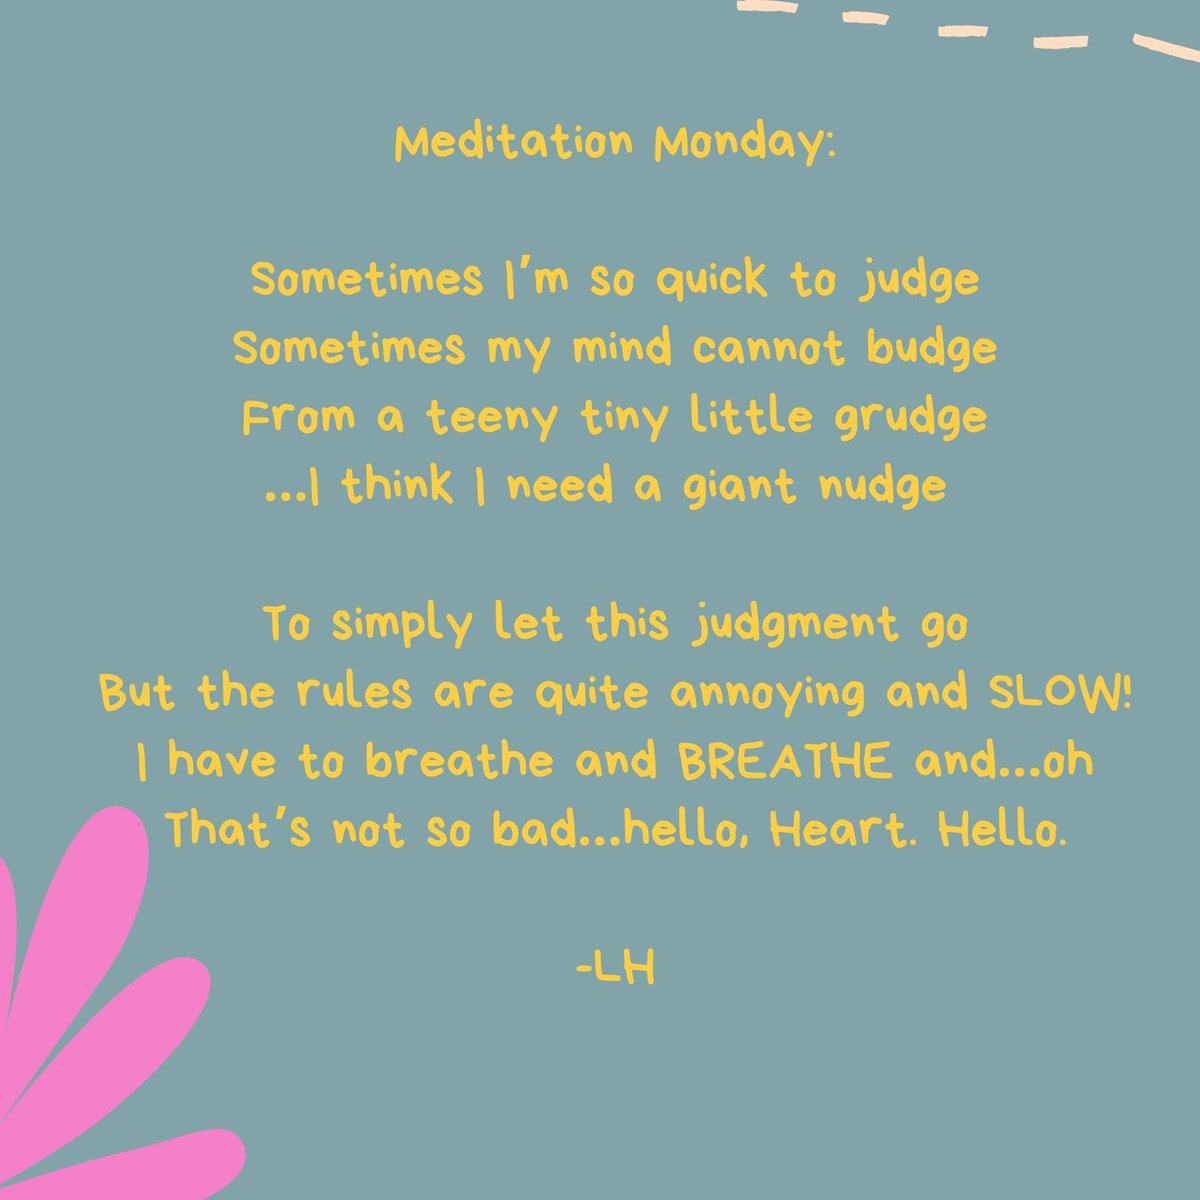 You know what, #mindfulness can be hard! Here's a little #MondayMindfulness reminder to let you know that you're not alone. Just keep on breathing, my friends 💜  #MeditationMiracles #MondayMotivation #mondaythoughts #mindfulnessforkids